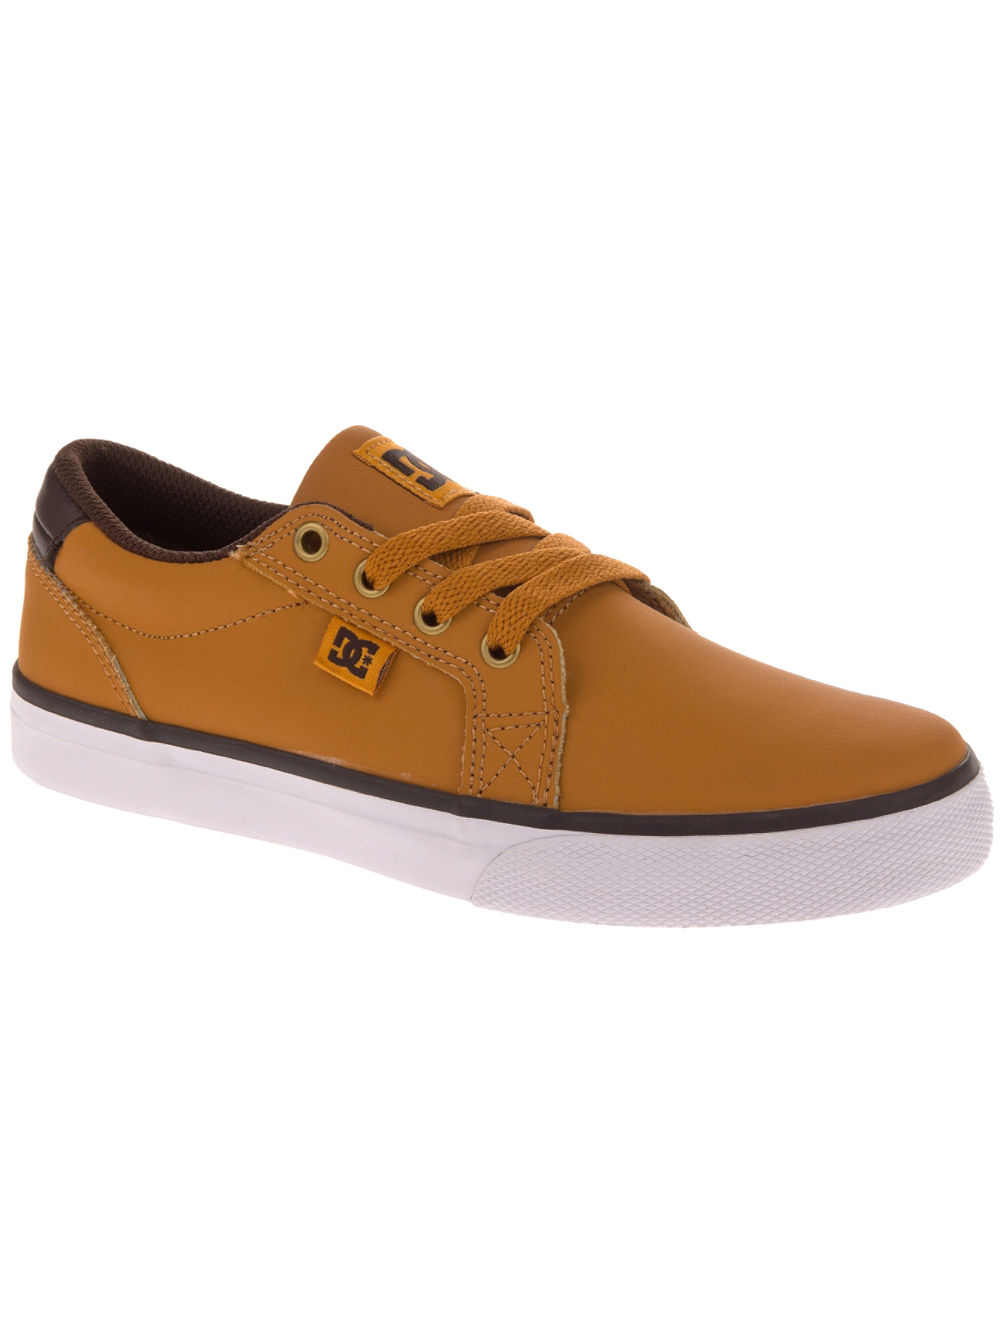 Kohl's has all brands and styles of boys shoes for his everyday wardrobe. When he's dressing to impress, shop our full selection of boys' brown dress shoes. If his outfit calls for a casually cool vibe, try boys' boat shoes.